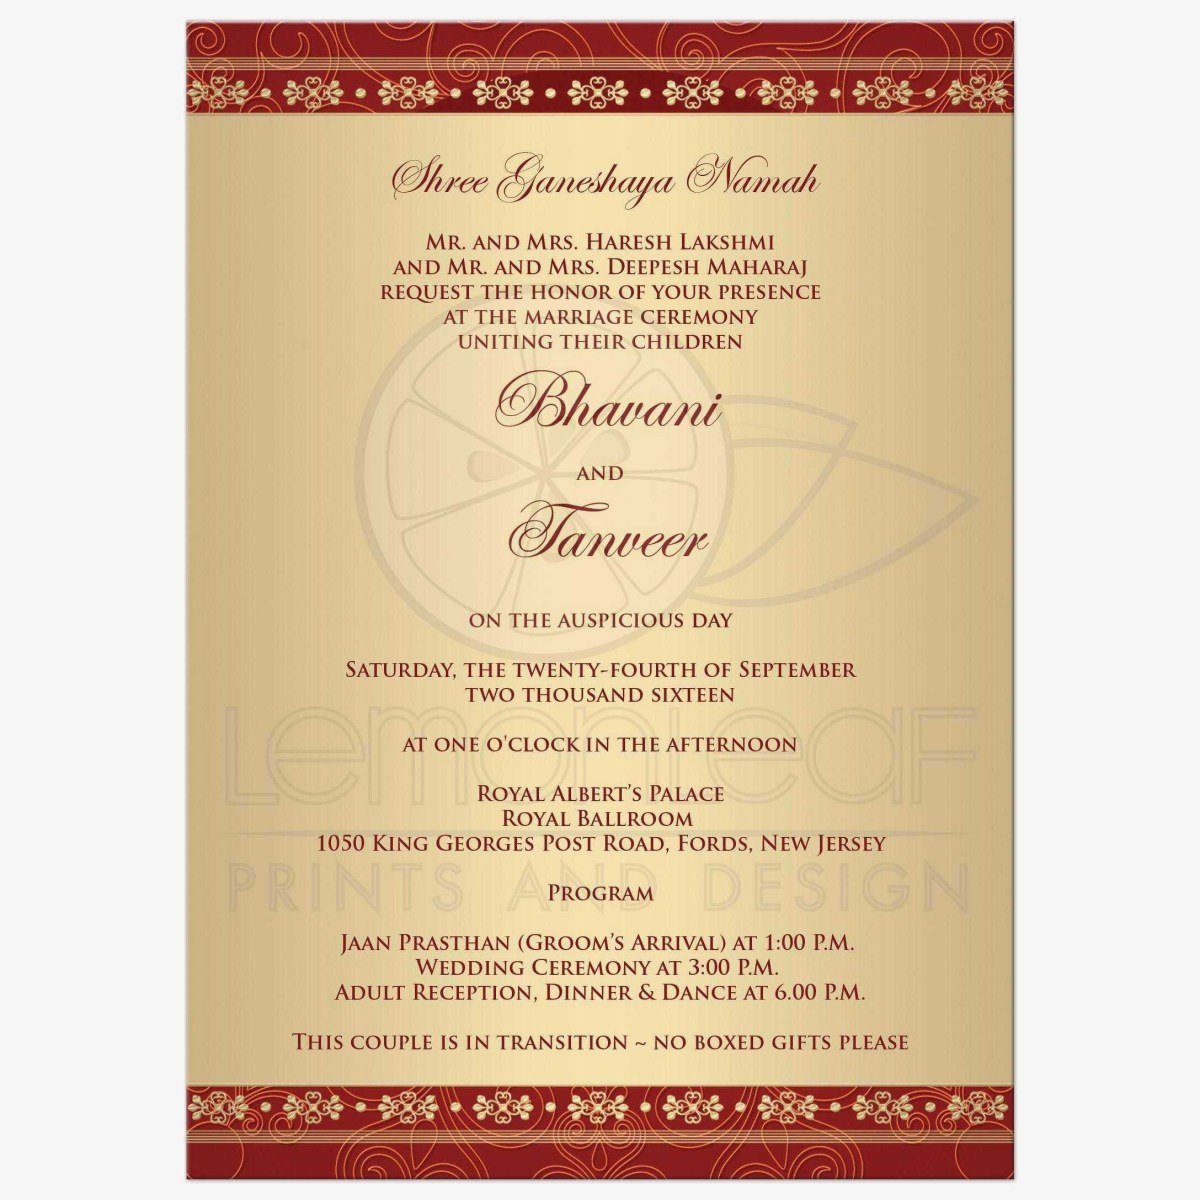 Sikh Wedding Invitations Sikh Wedding Cards Lovely 30 Fresh Christian Wedding Invitation